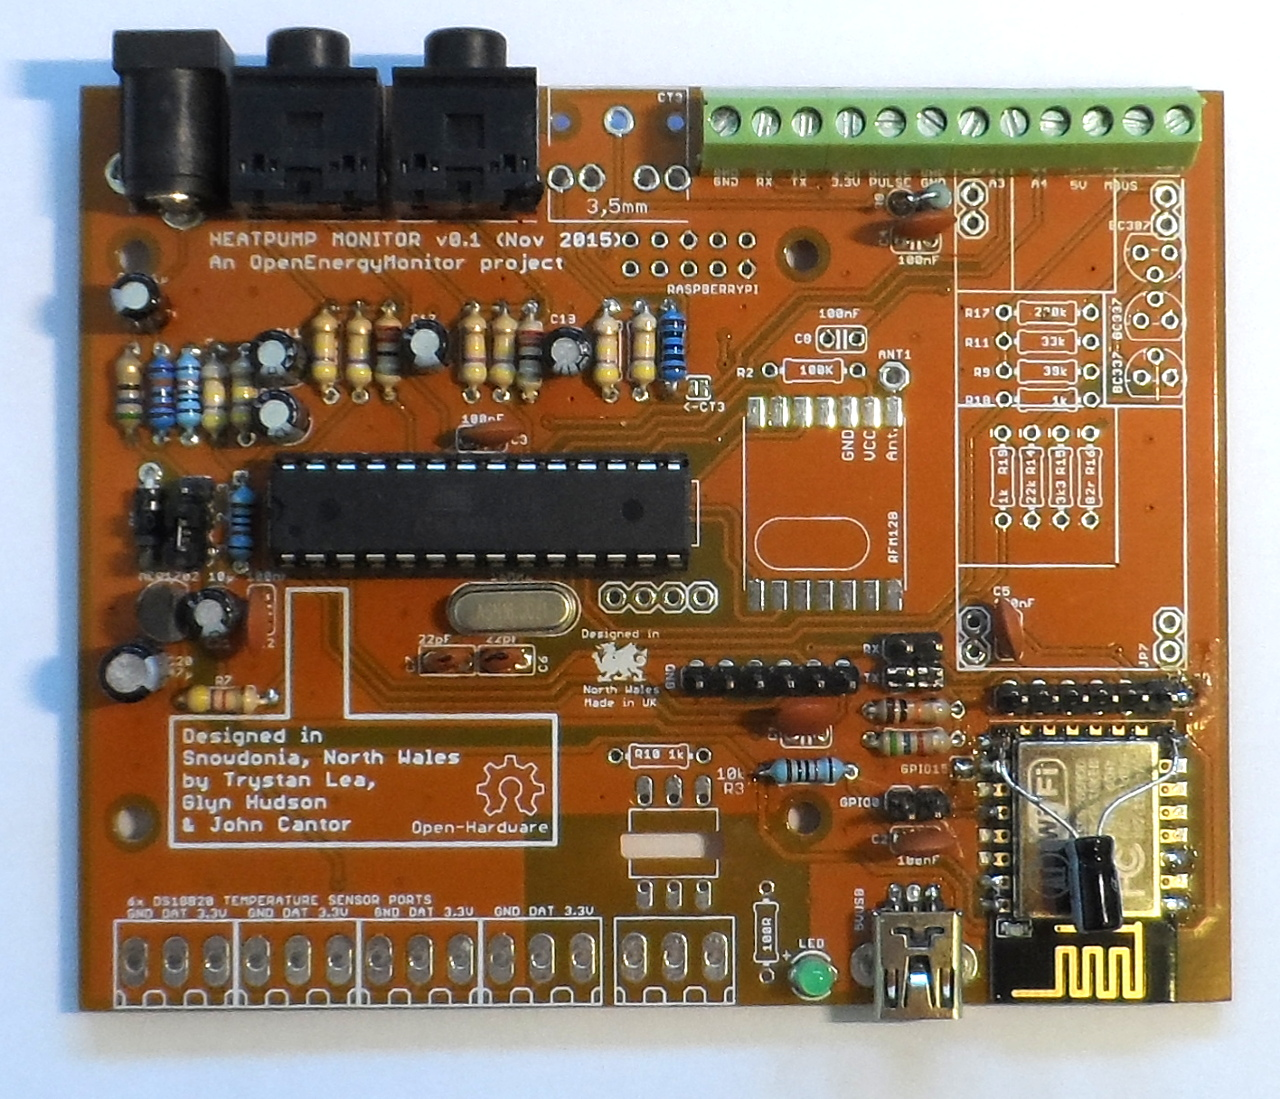 Next Ecohome Lab Build You Own Home Energy Monitor System Carbon Coop Circuit Energymonitor V2